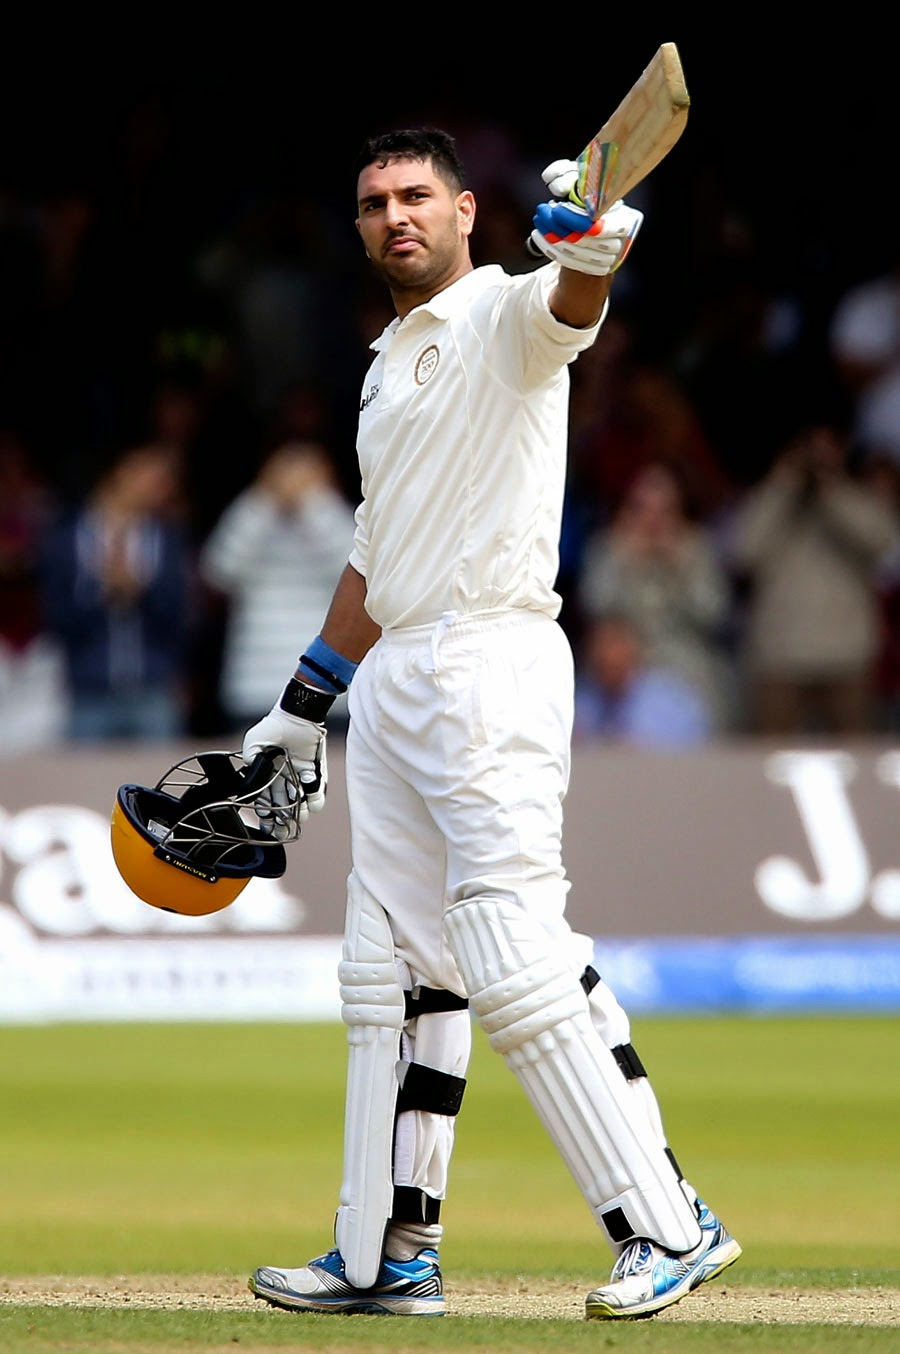 Yuvraj-Singh-Marylebone-Cricket-Club-vs-Rest-of-the-World-XI-Lords